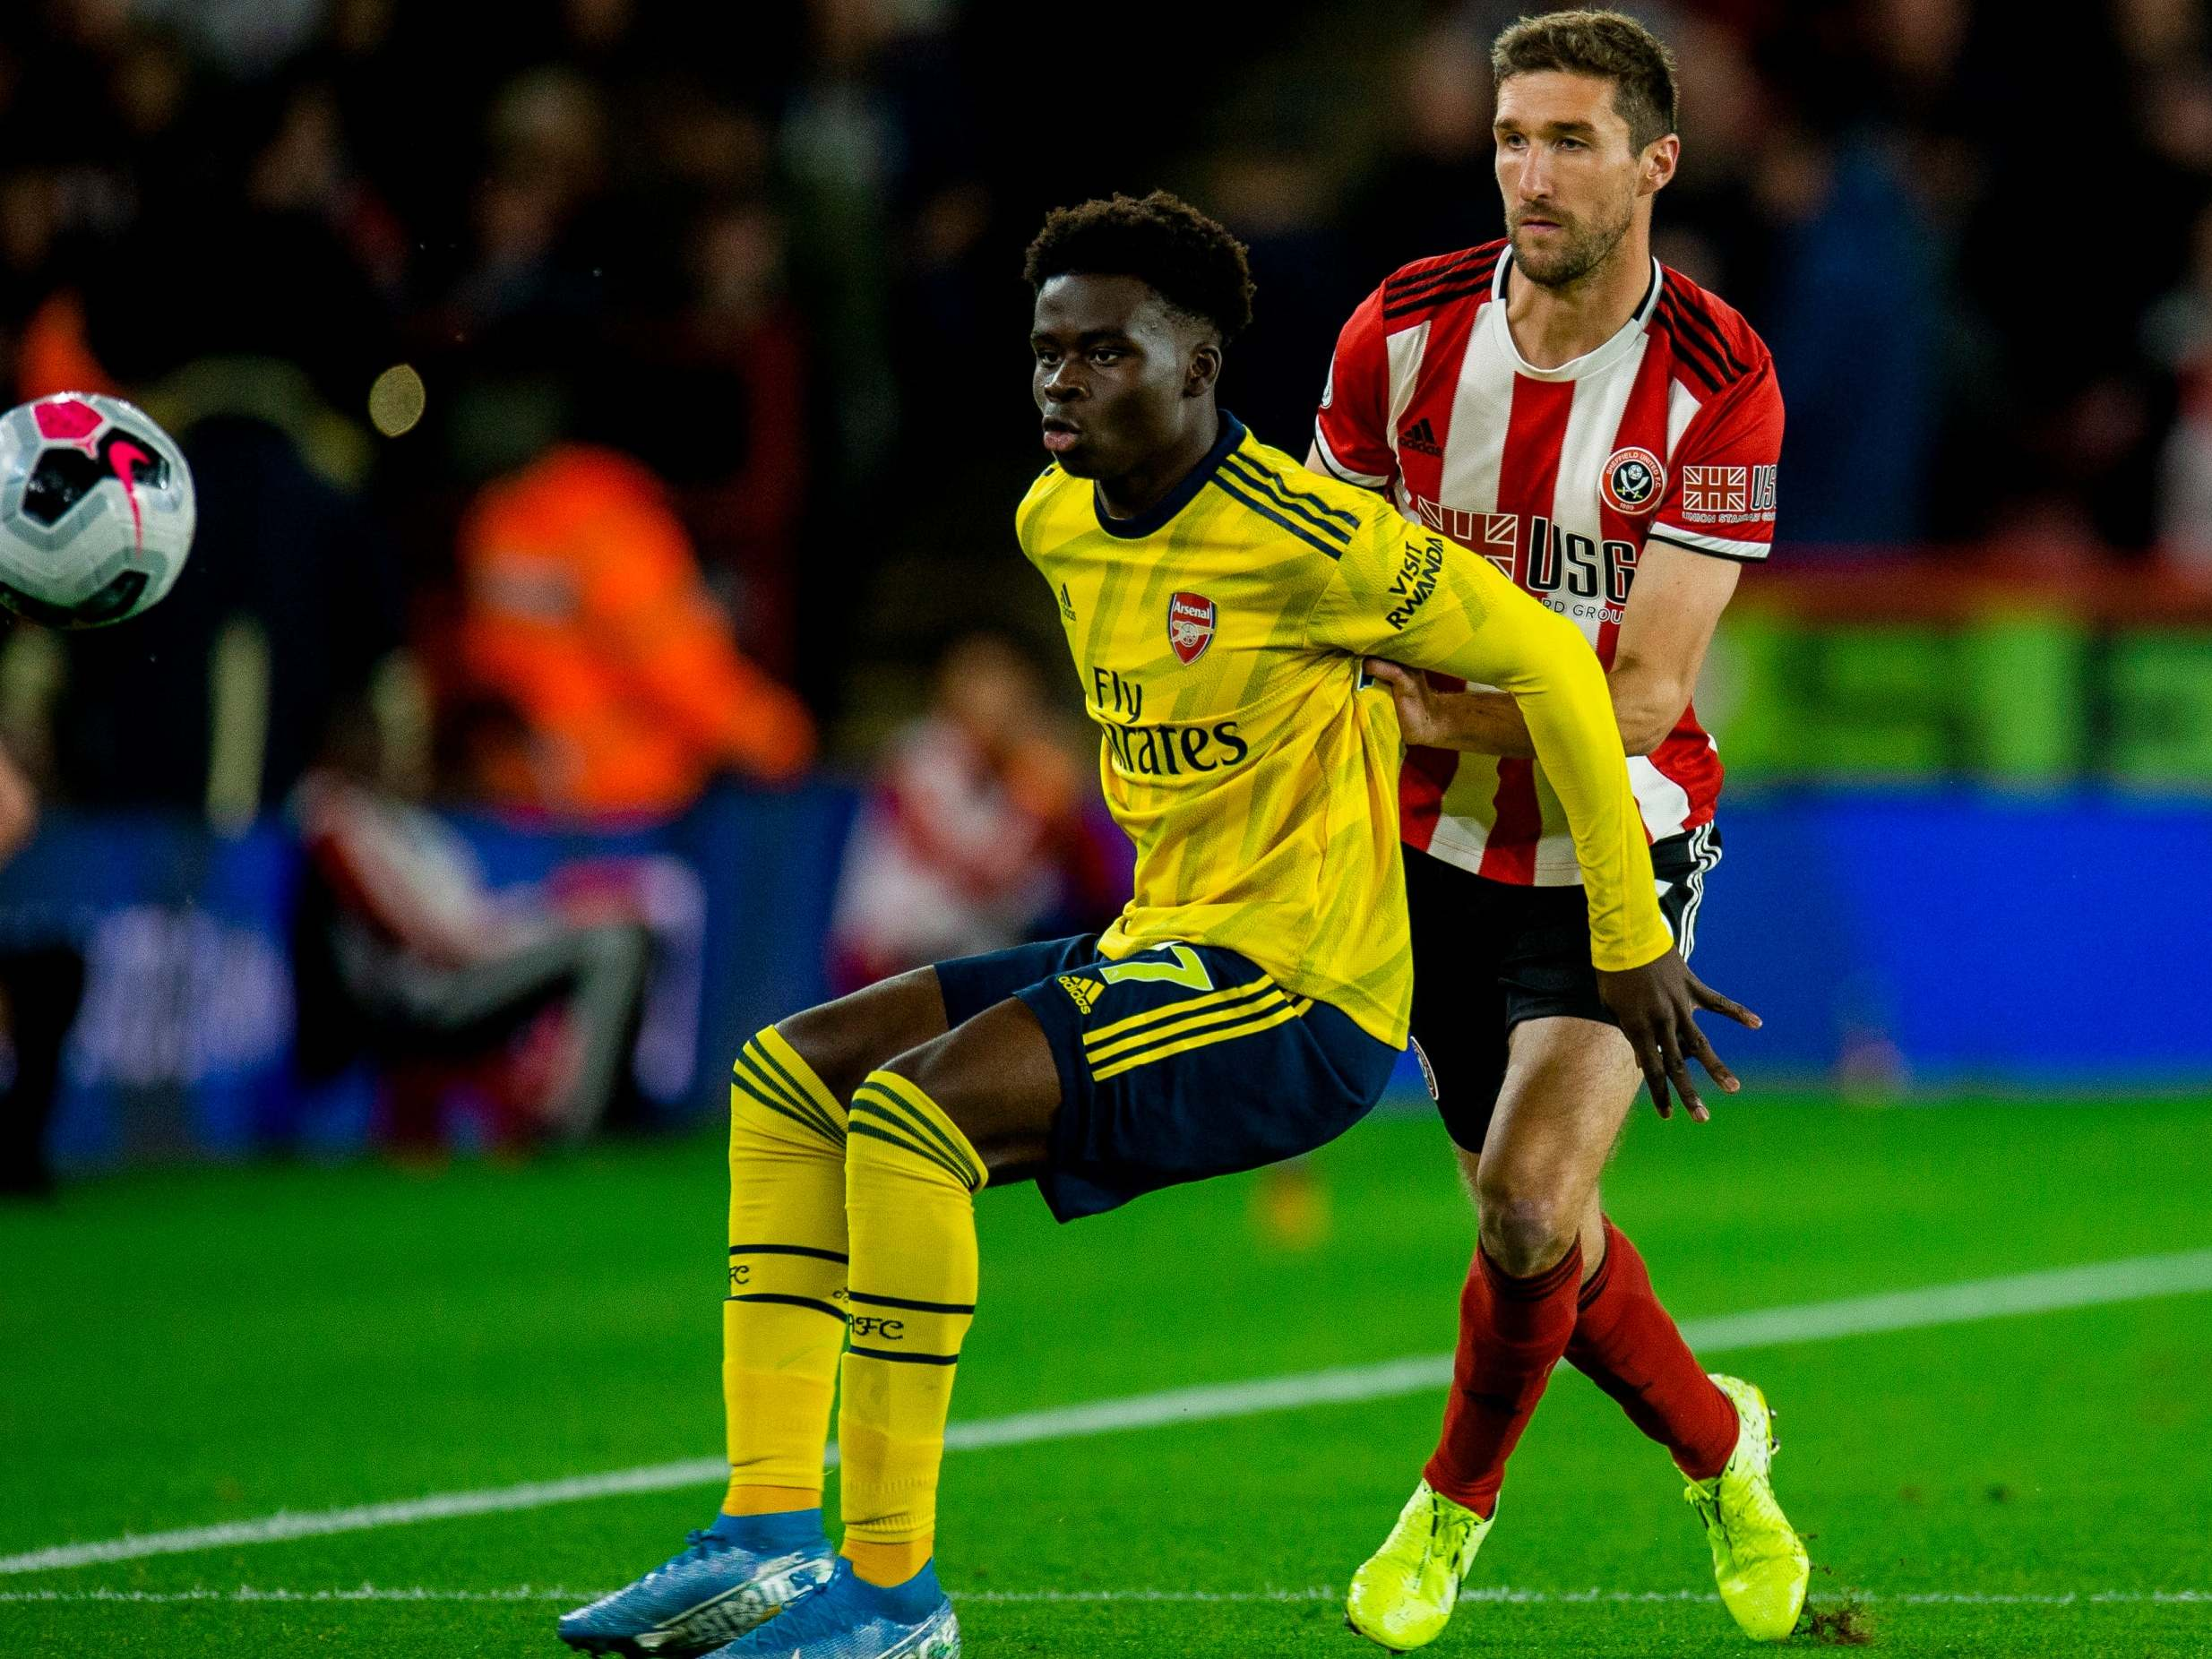 Sheffield United vs Arsenal LIVE result: Blades cut through Gunners to earn all three points